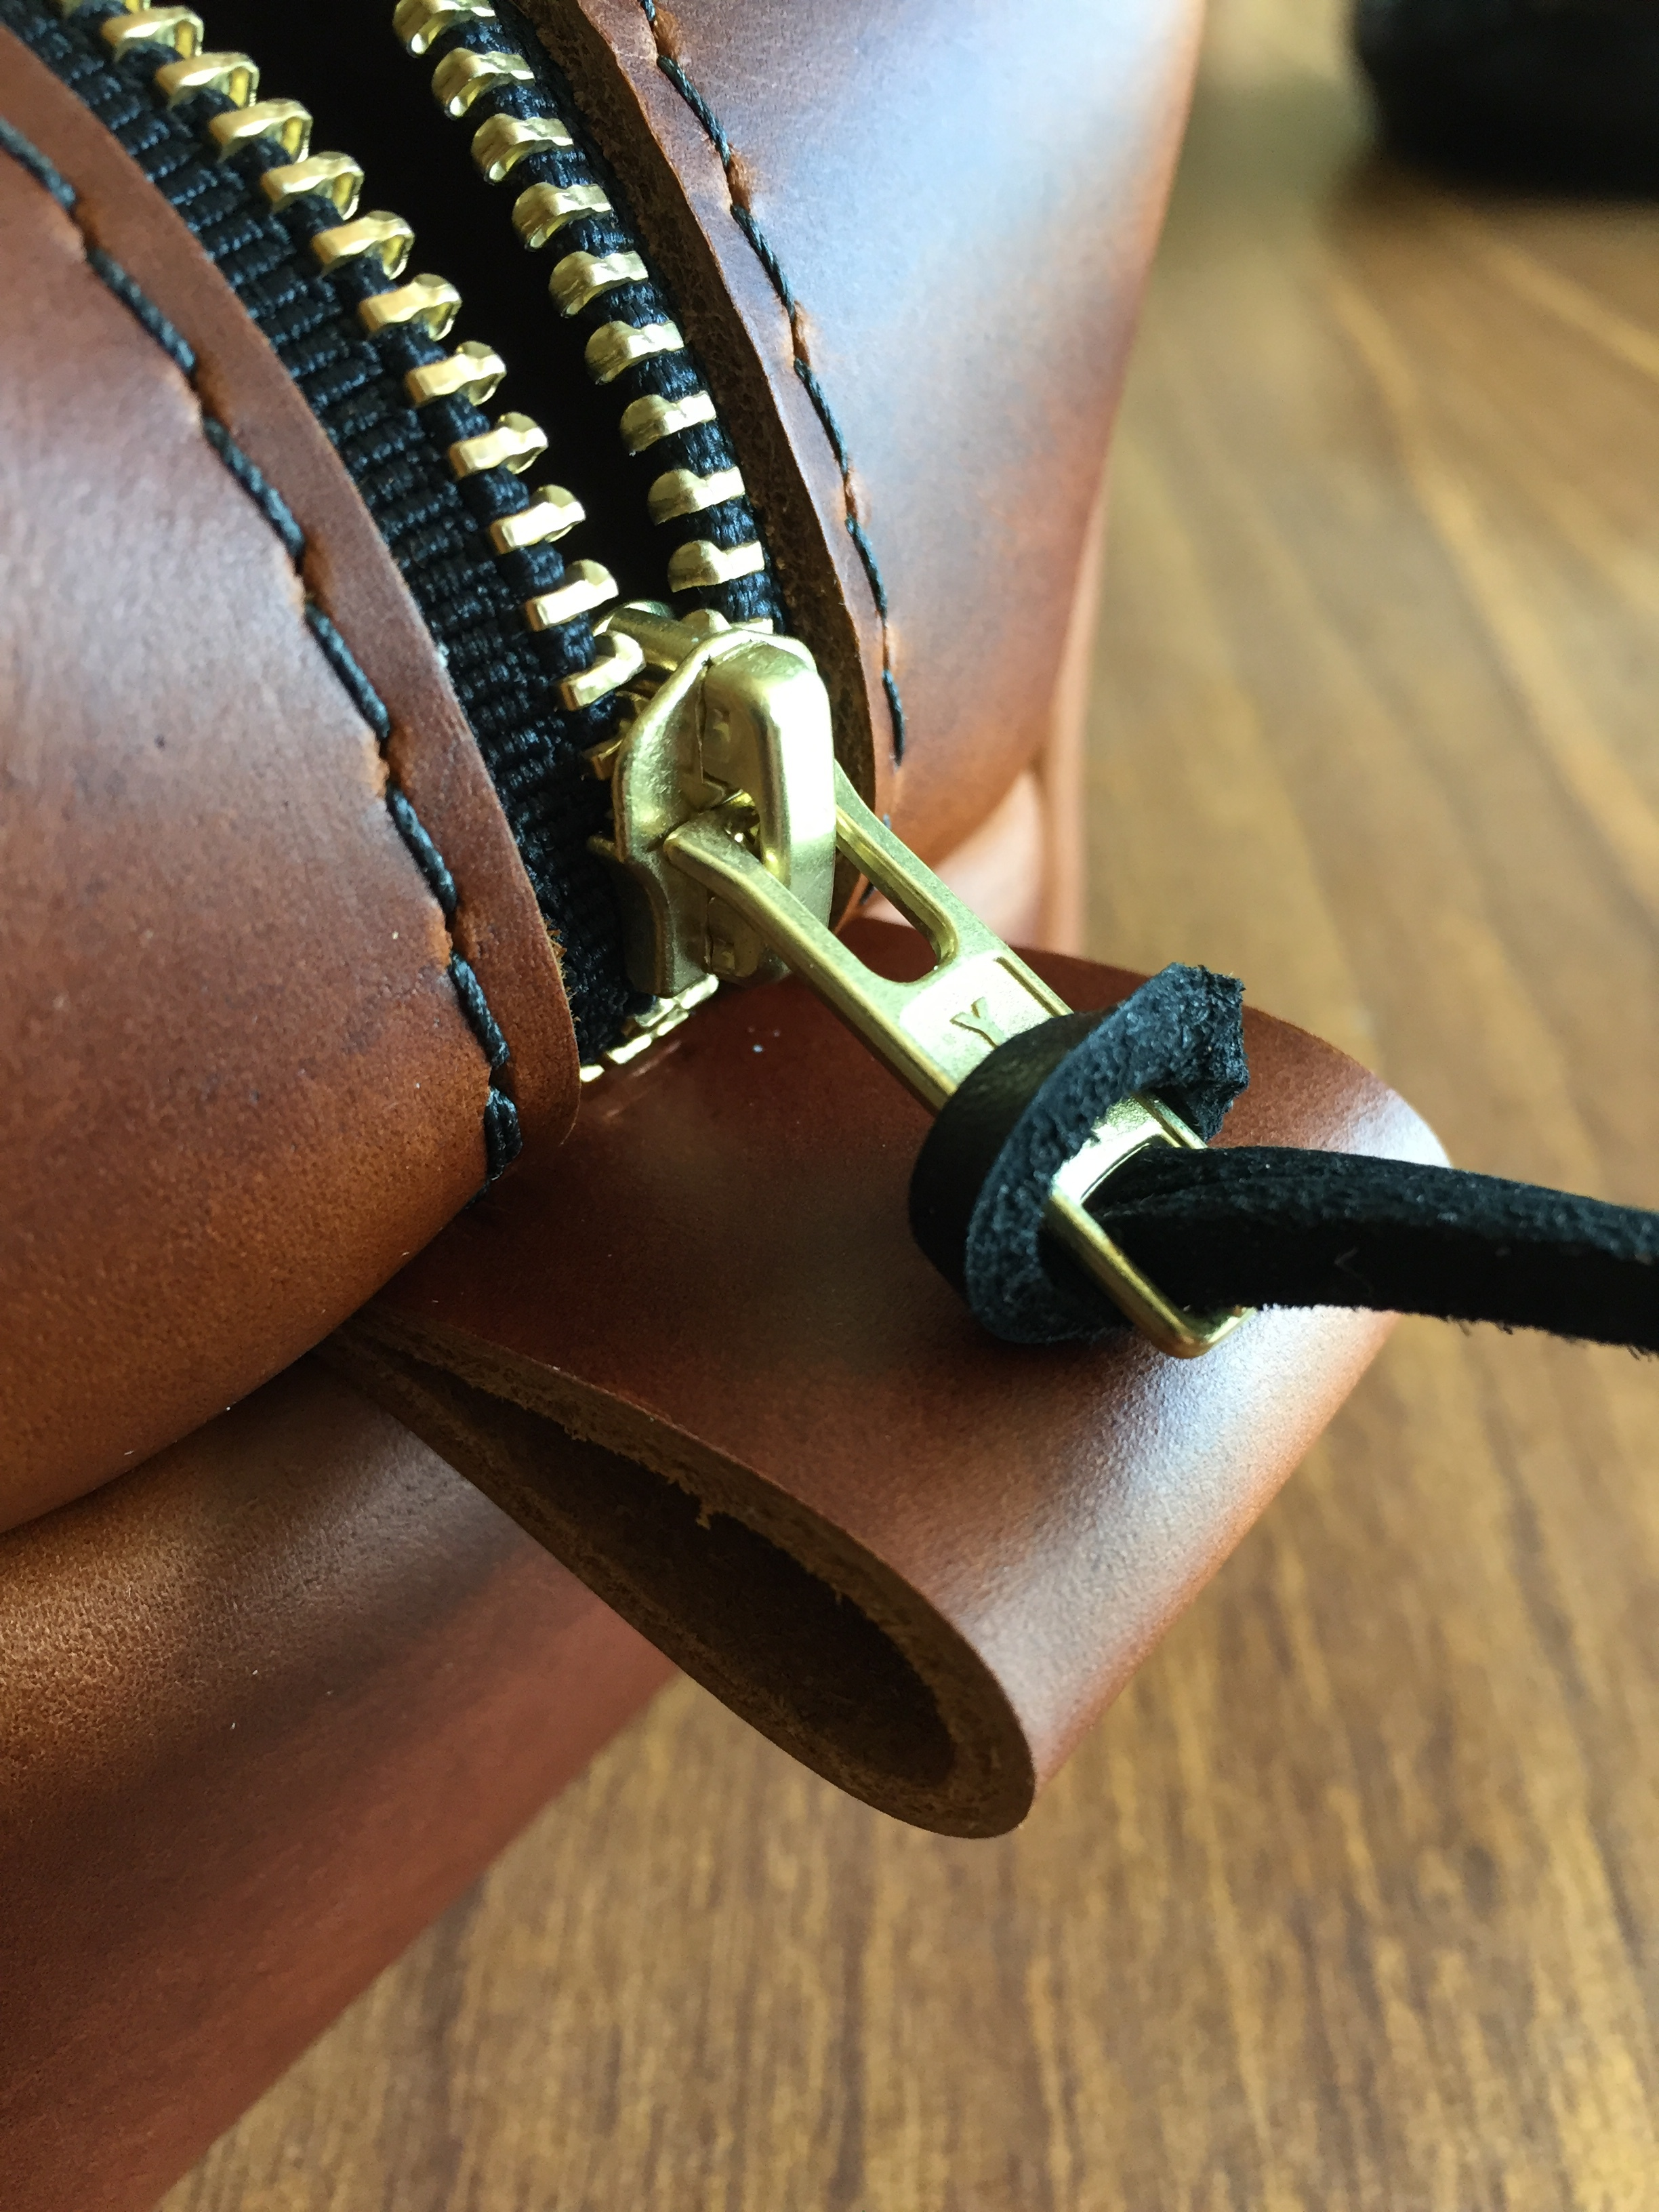 The piece used most, the zipper, is stout and commanding.